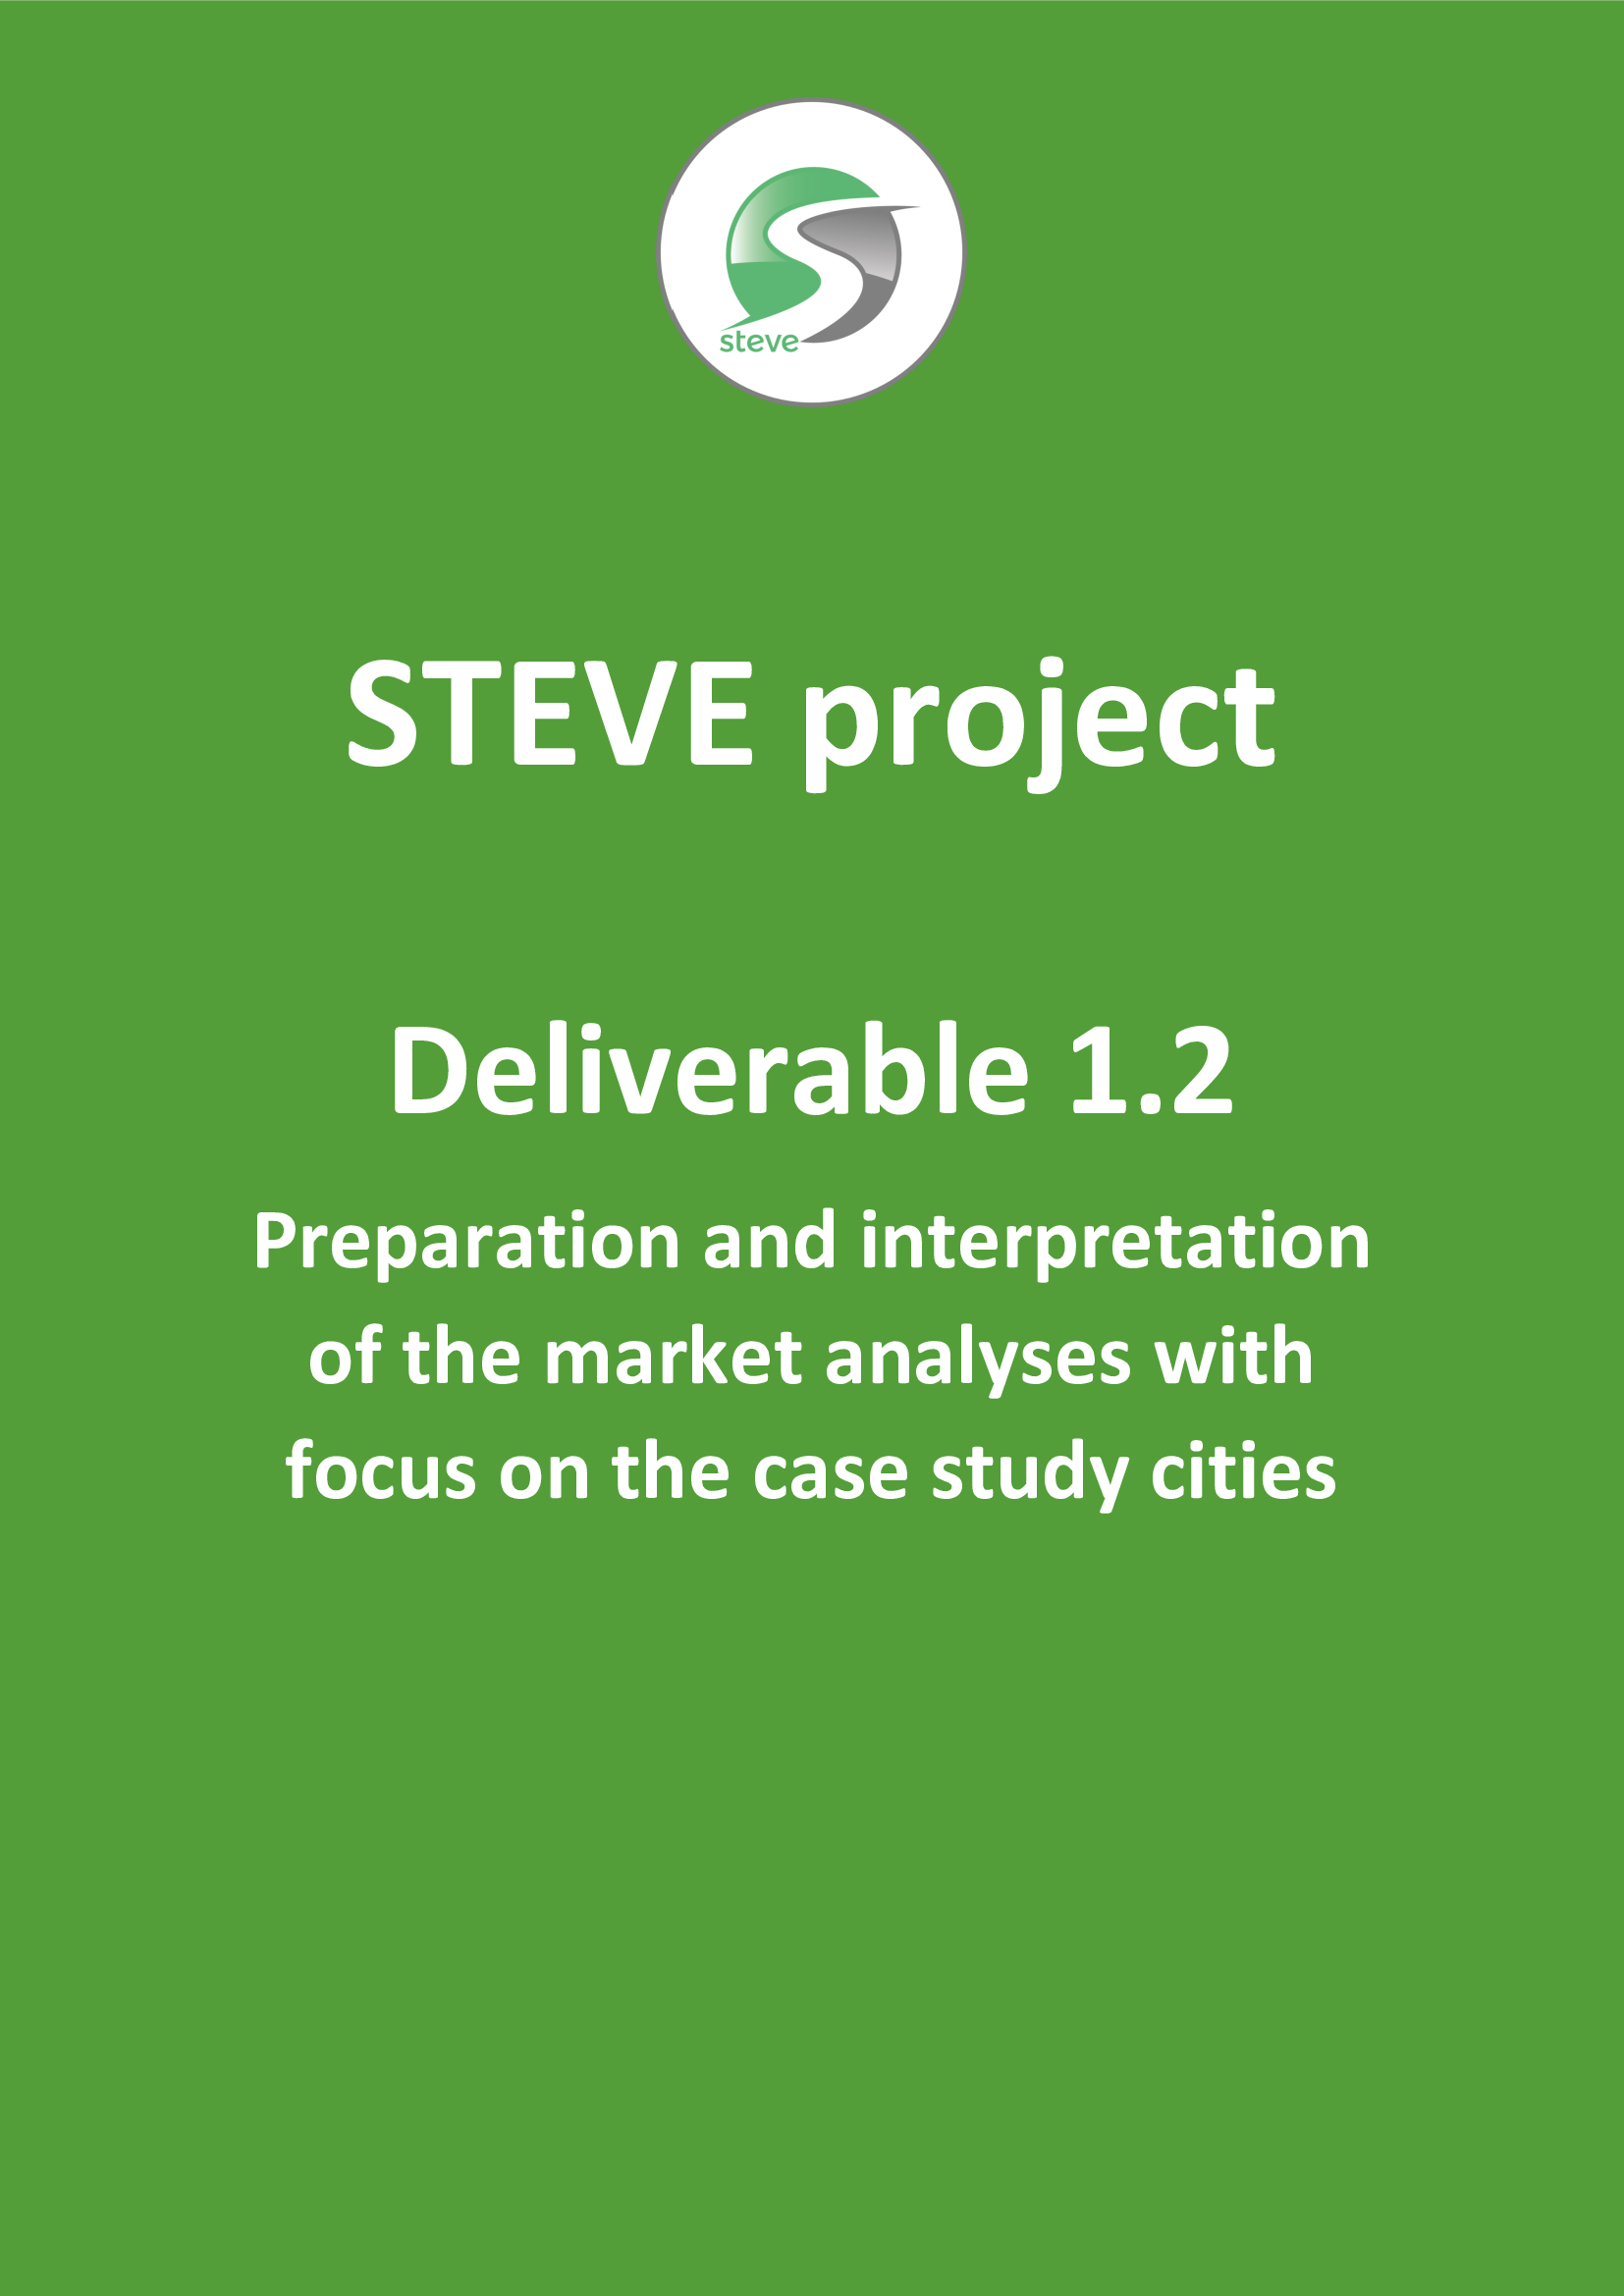 Deliverable 1.2